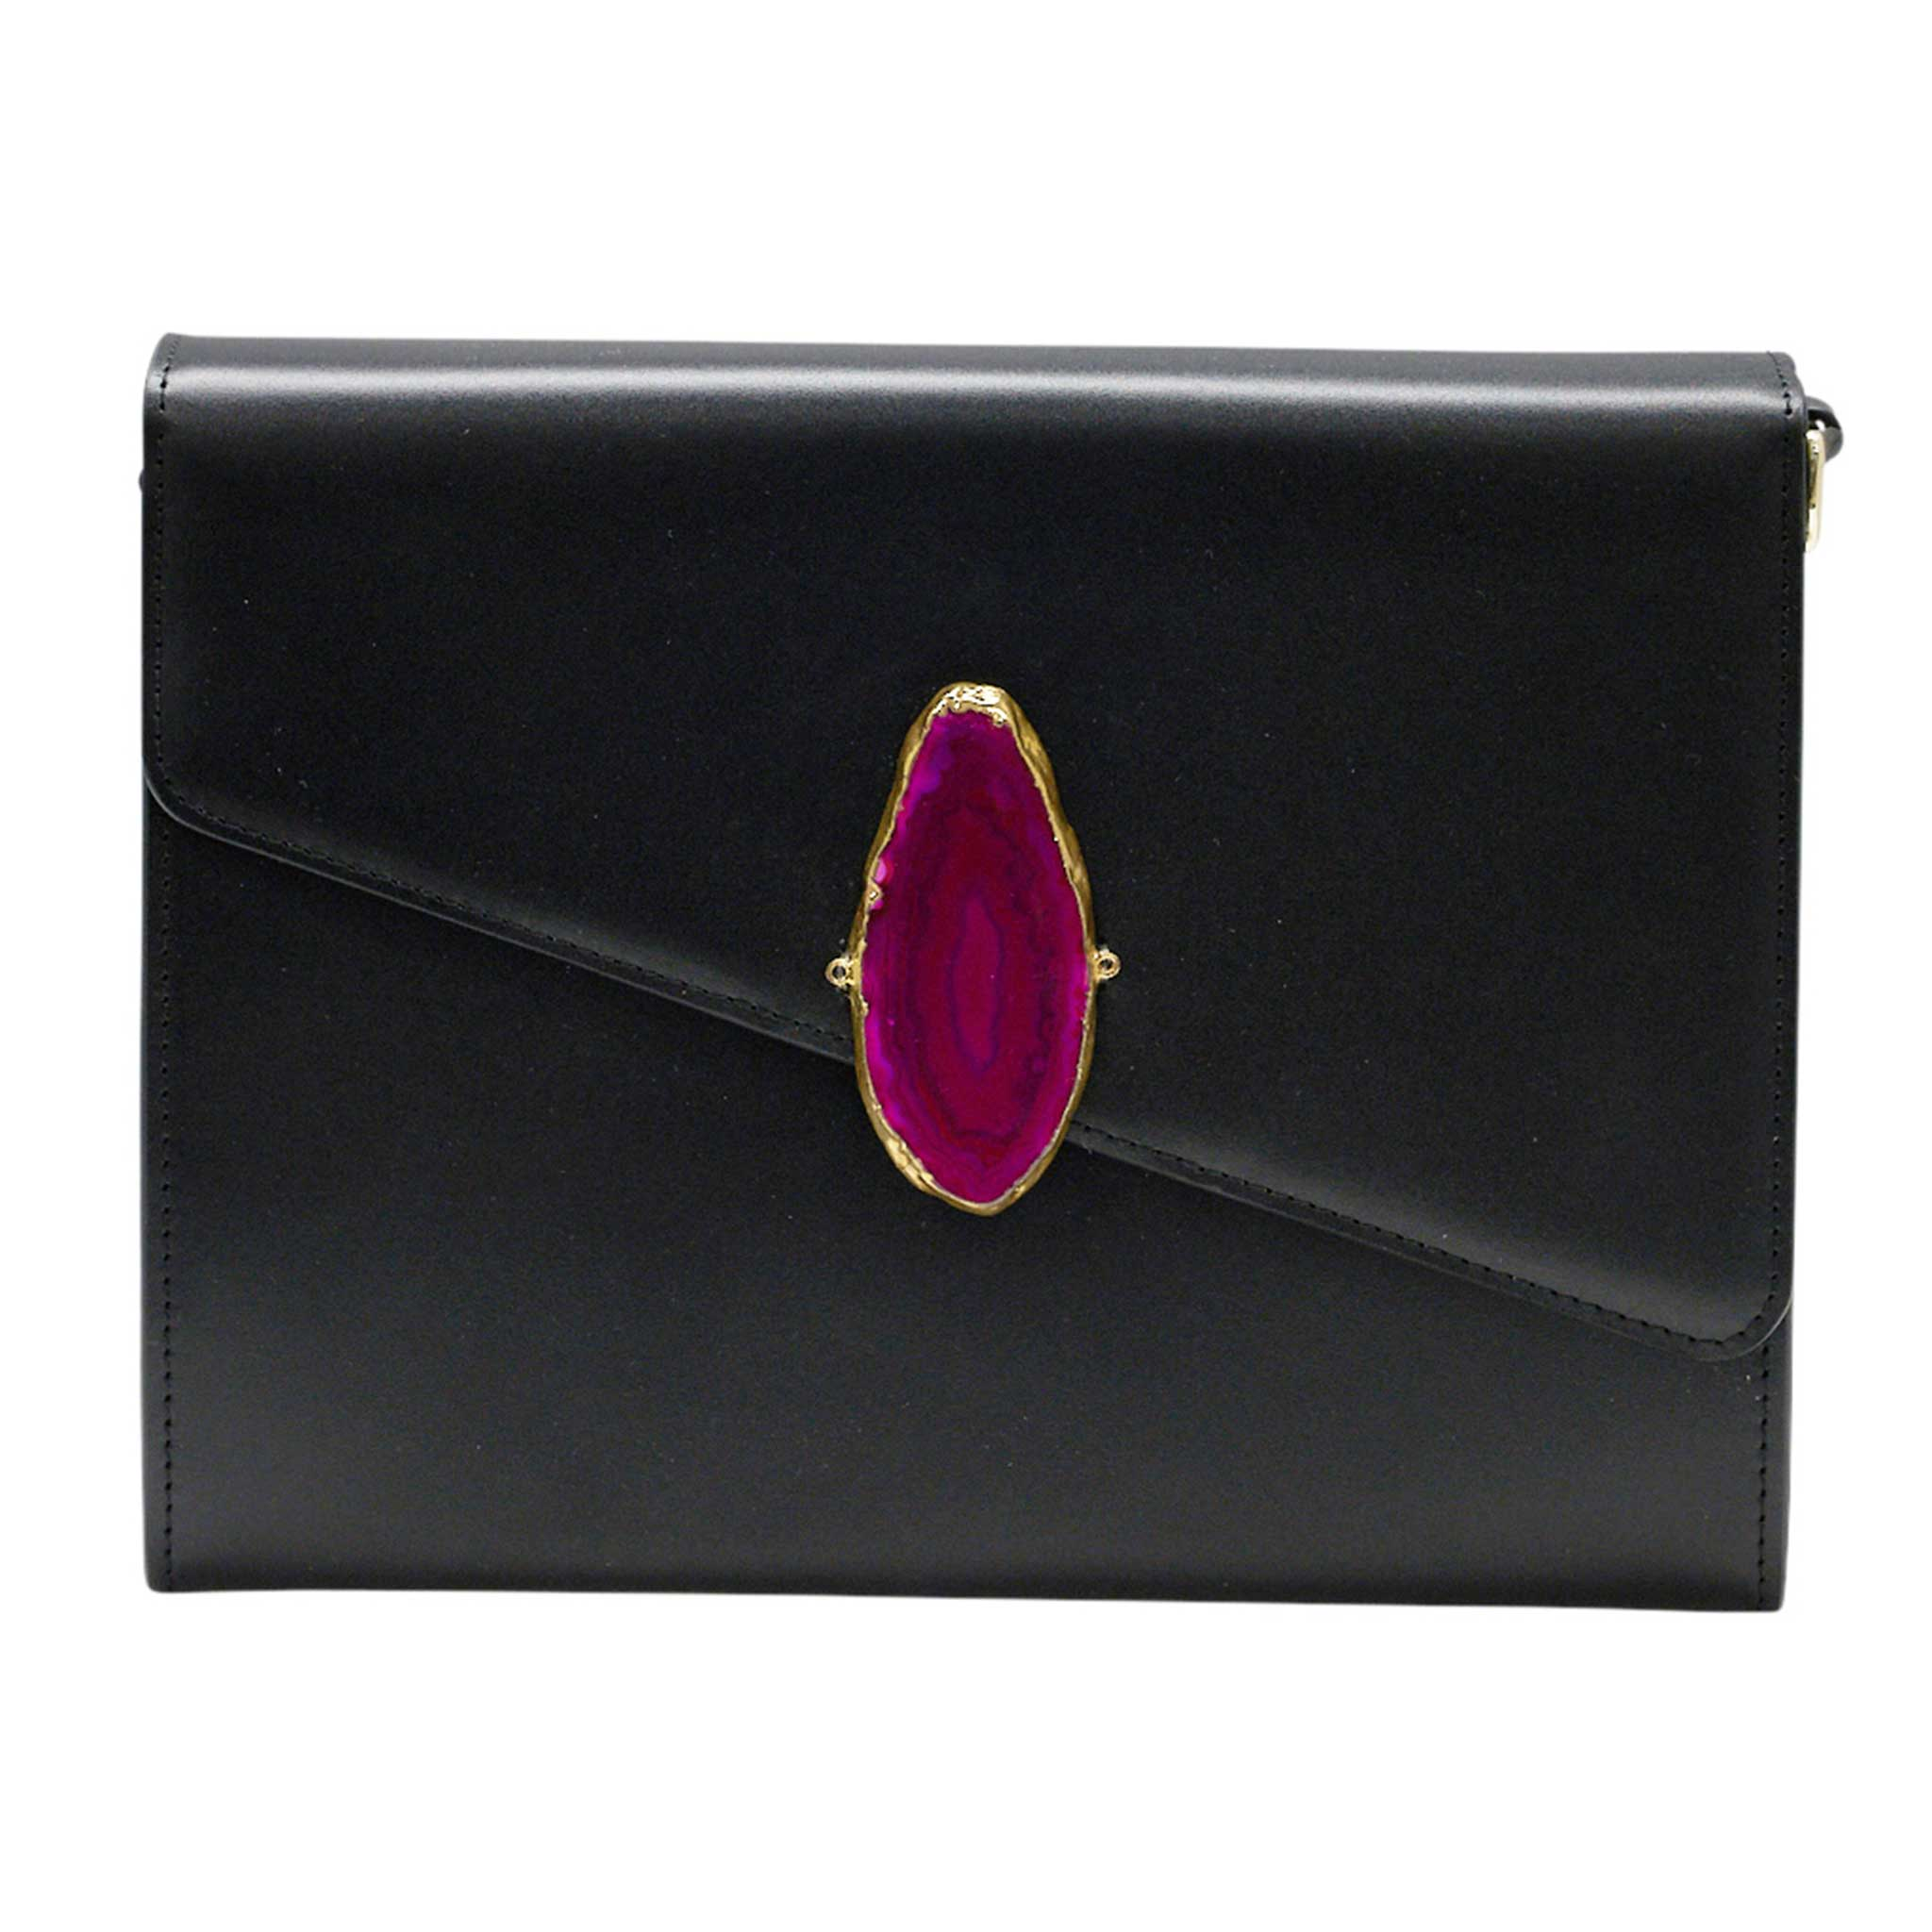 LOVED BAG - BLACK LEATHER WITH PINK AGATE - 1.04.005.001